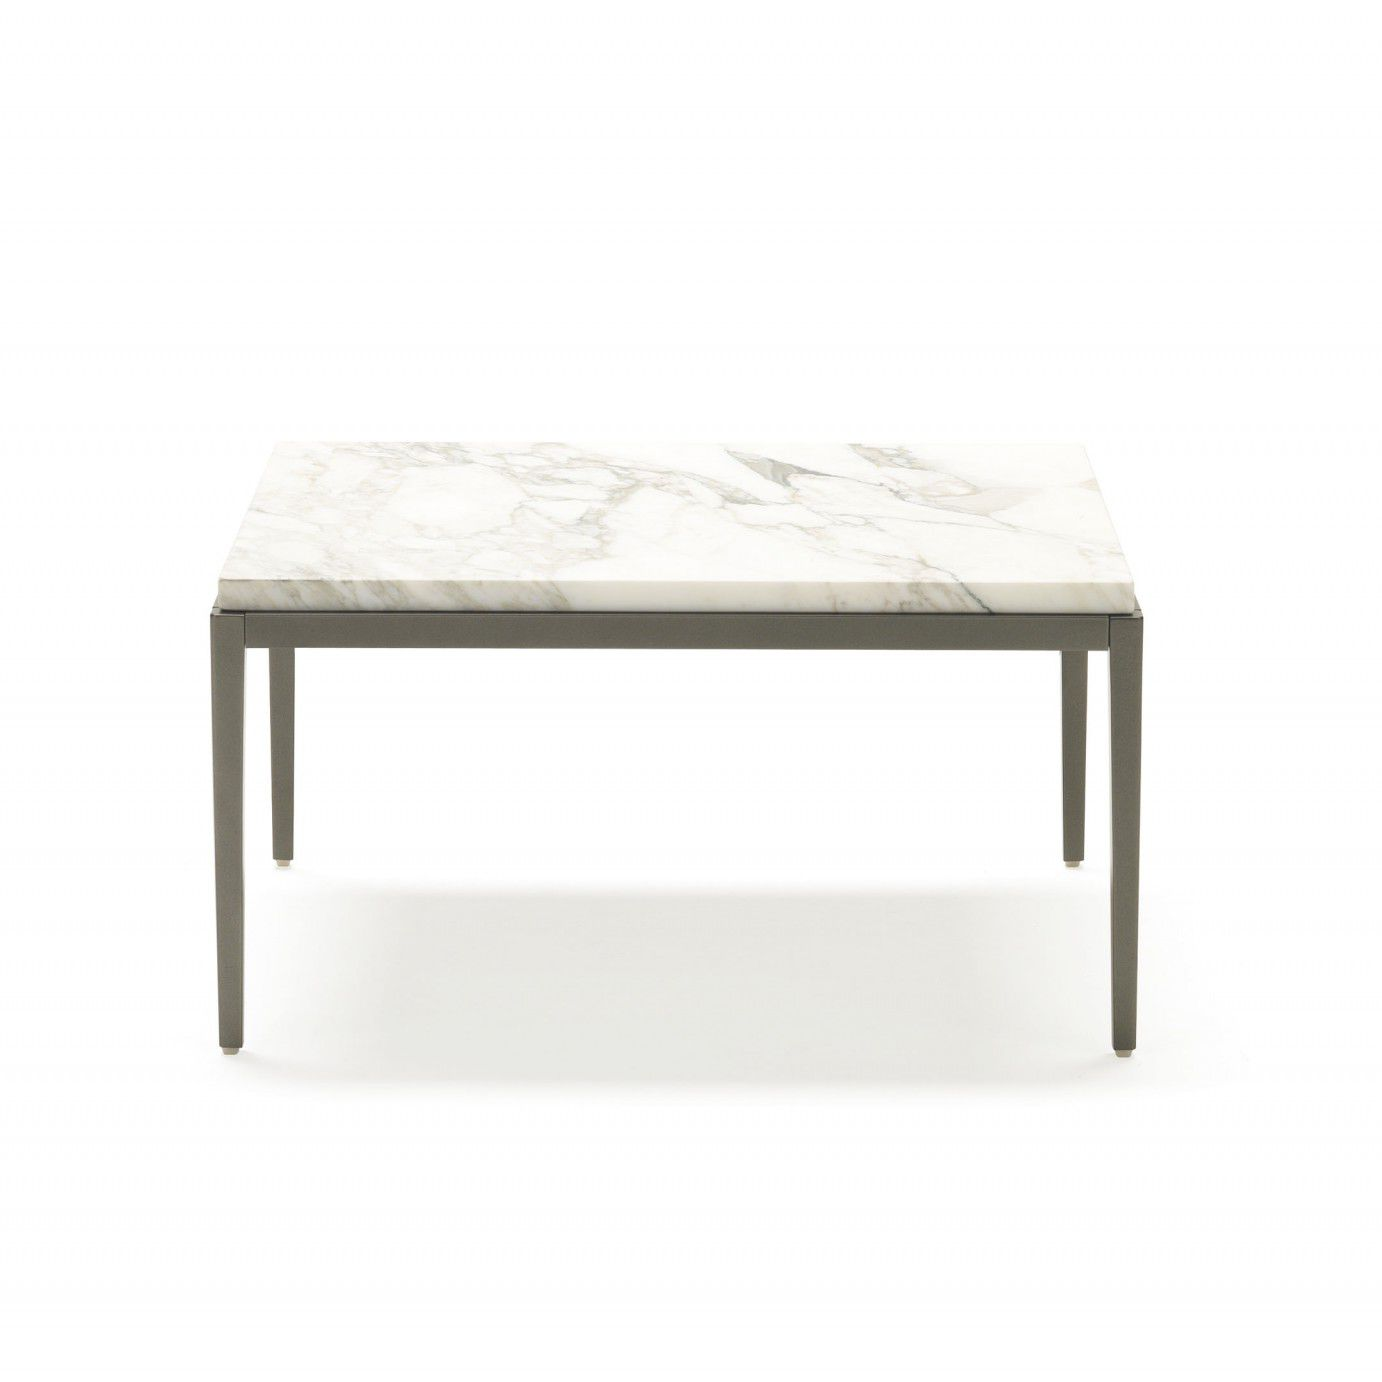 table basse chene metal id es de d coration int rieure french decor. Black Bedroom Furniture Sets. Home Design Ideas